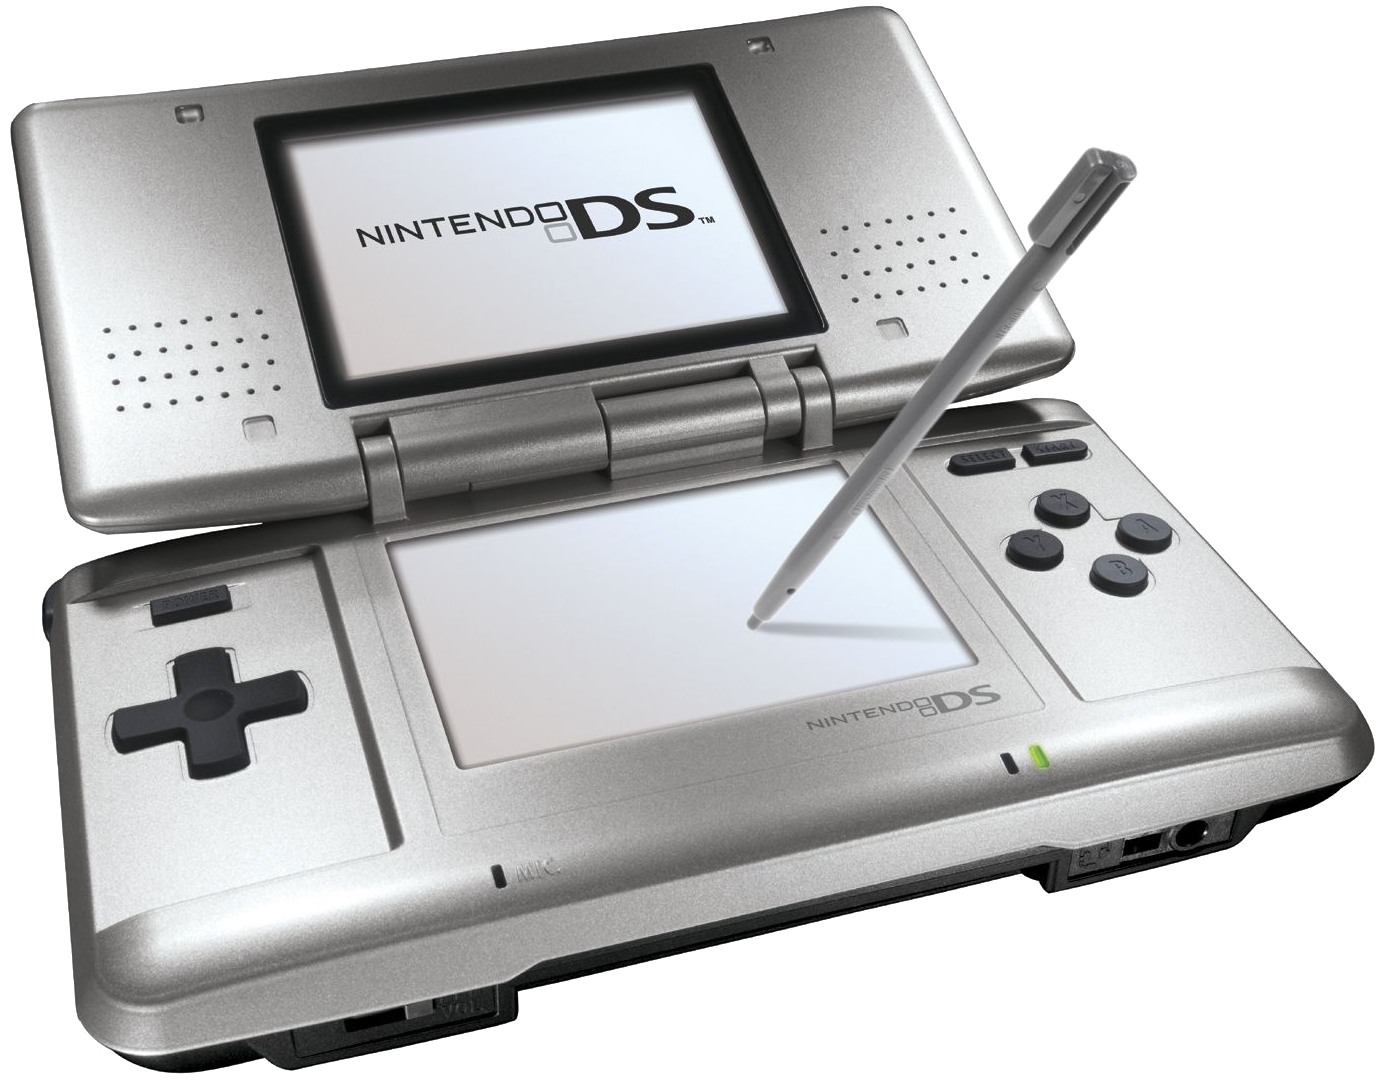 nintendo-ds-original-grey-model.png